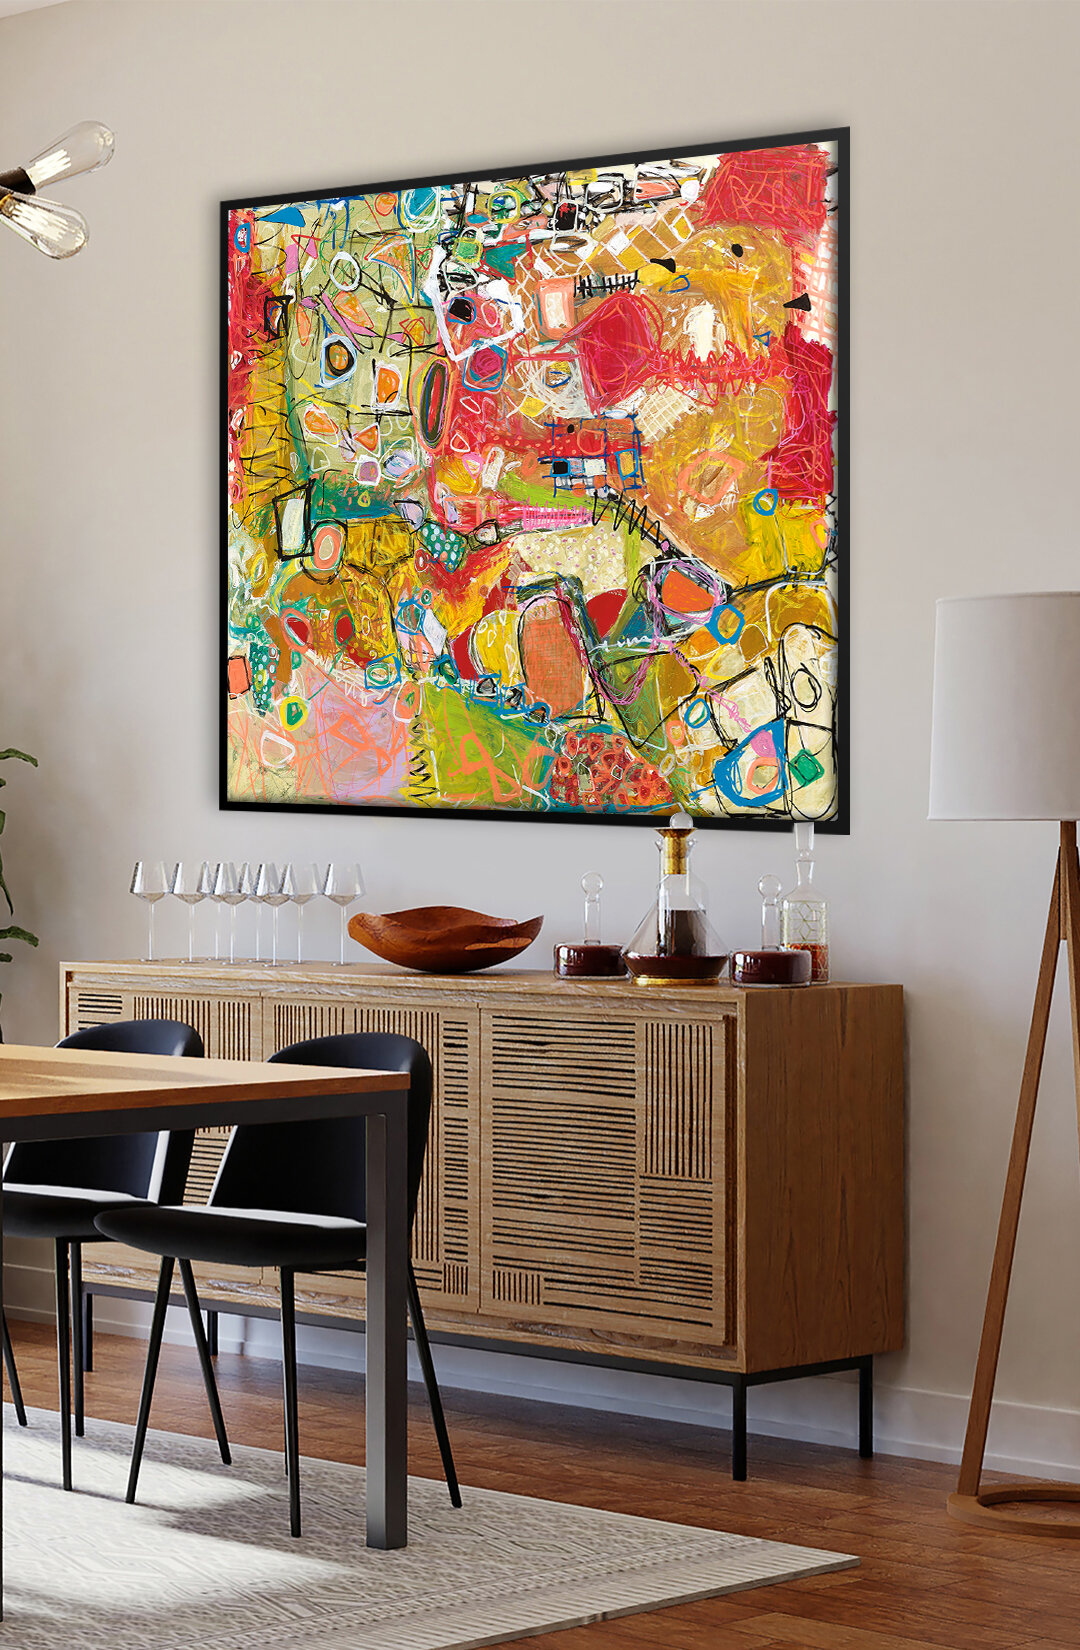 Large modern abstract art for interior decor inspiration